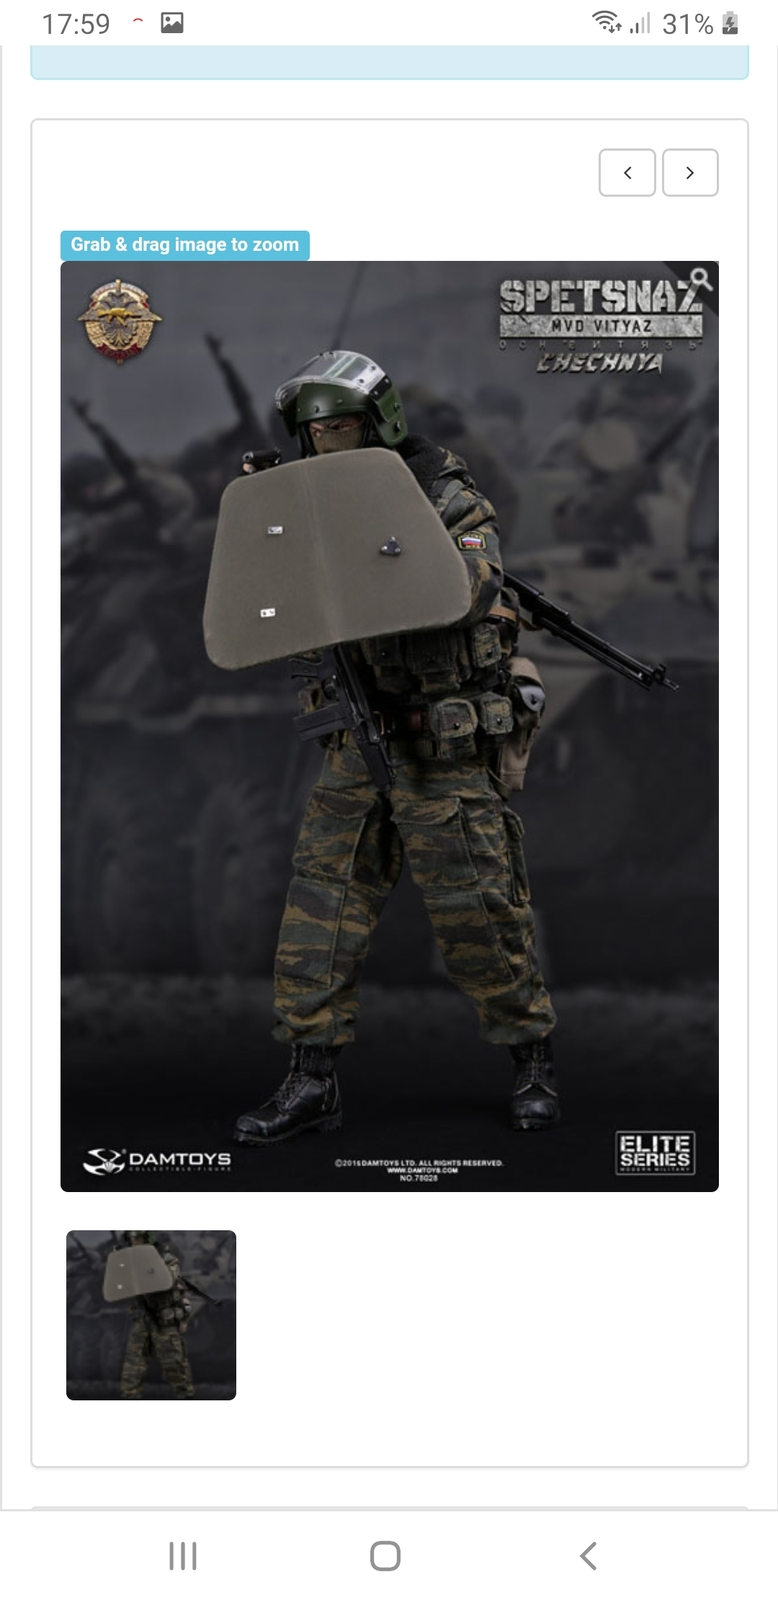 Primary image for Dam Toys 1/6 Scale Damtoys SPETSNAZ MVD Osn Vityaz in CHECHNYA 78028 Hot Toys